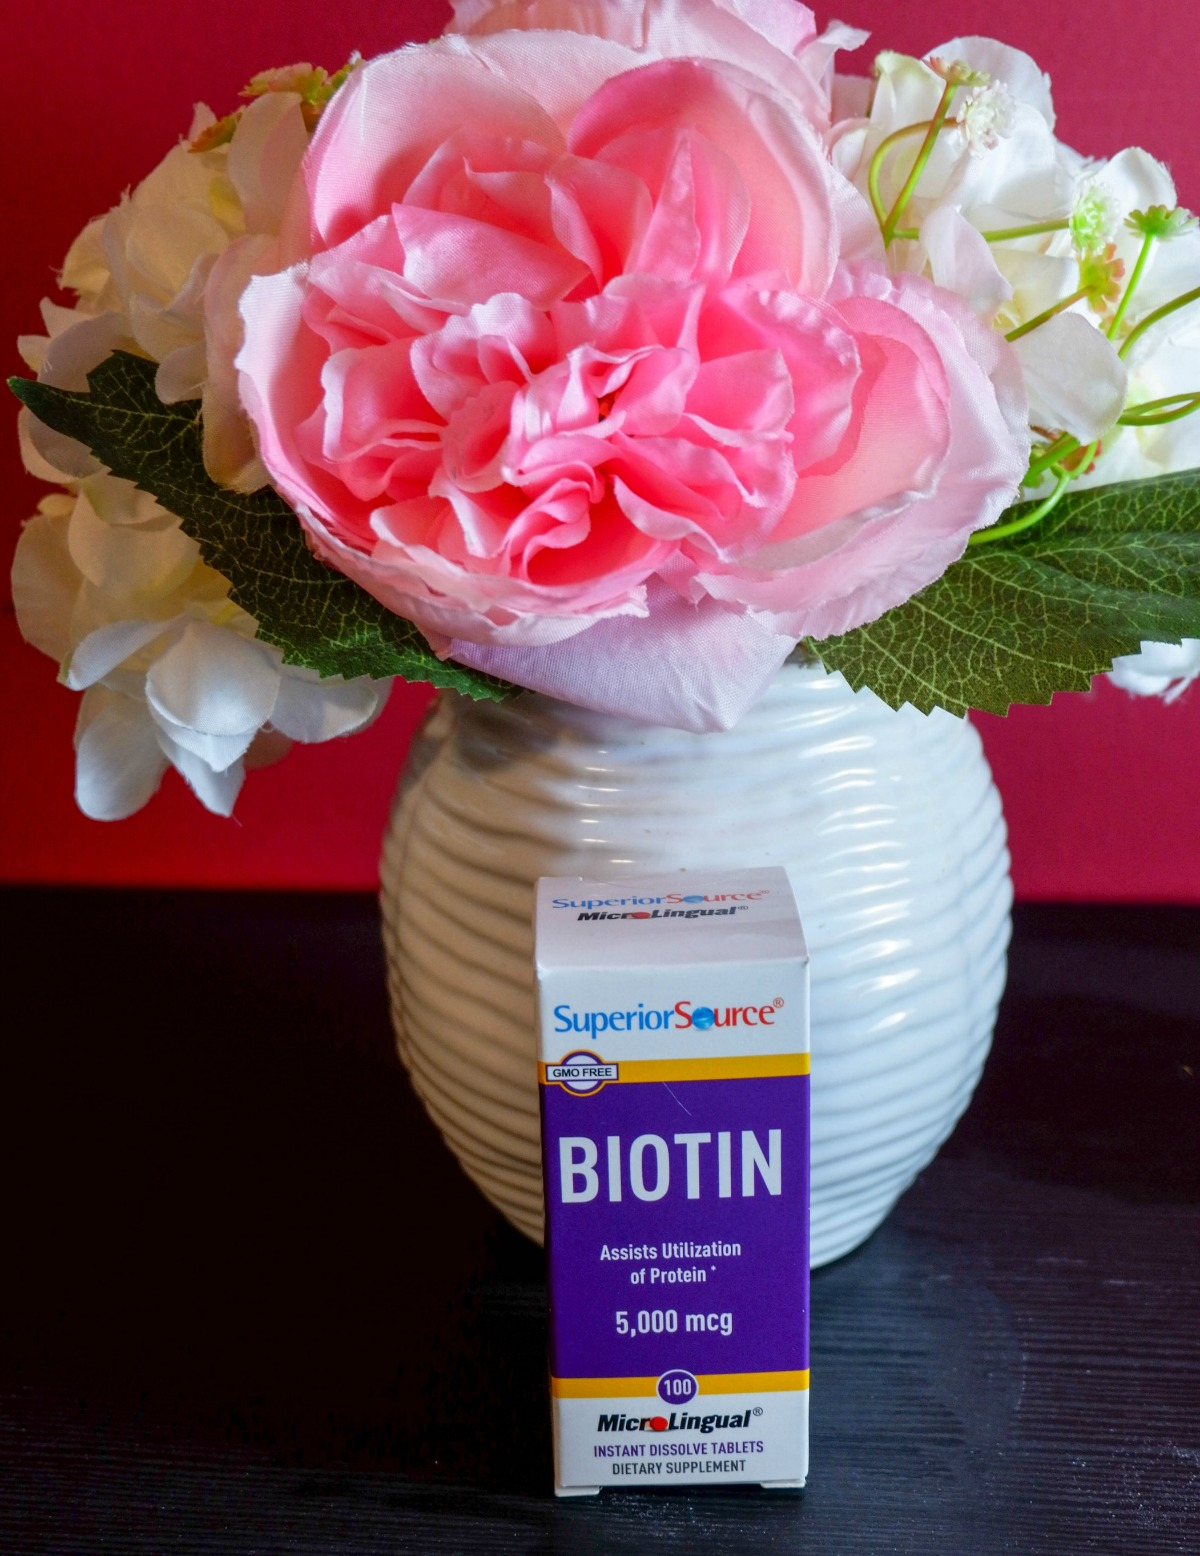 Superior Source Vitamins biotin